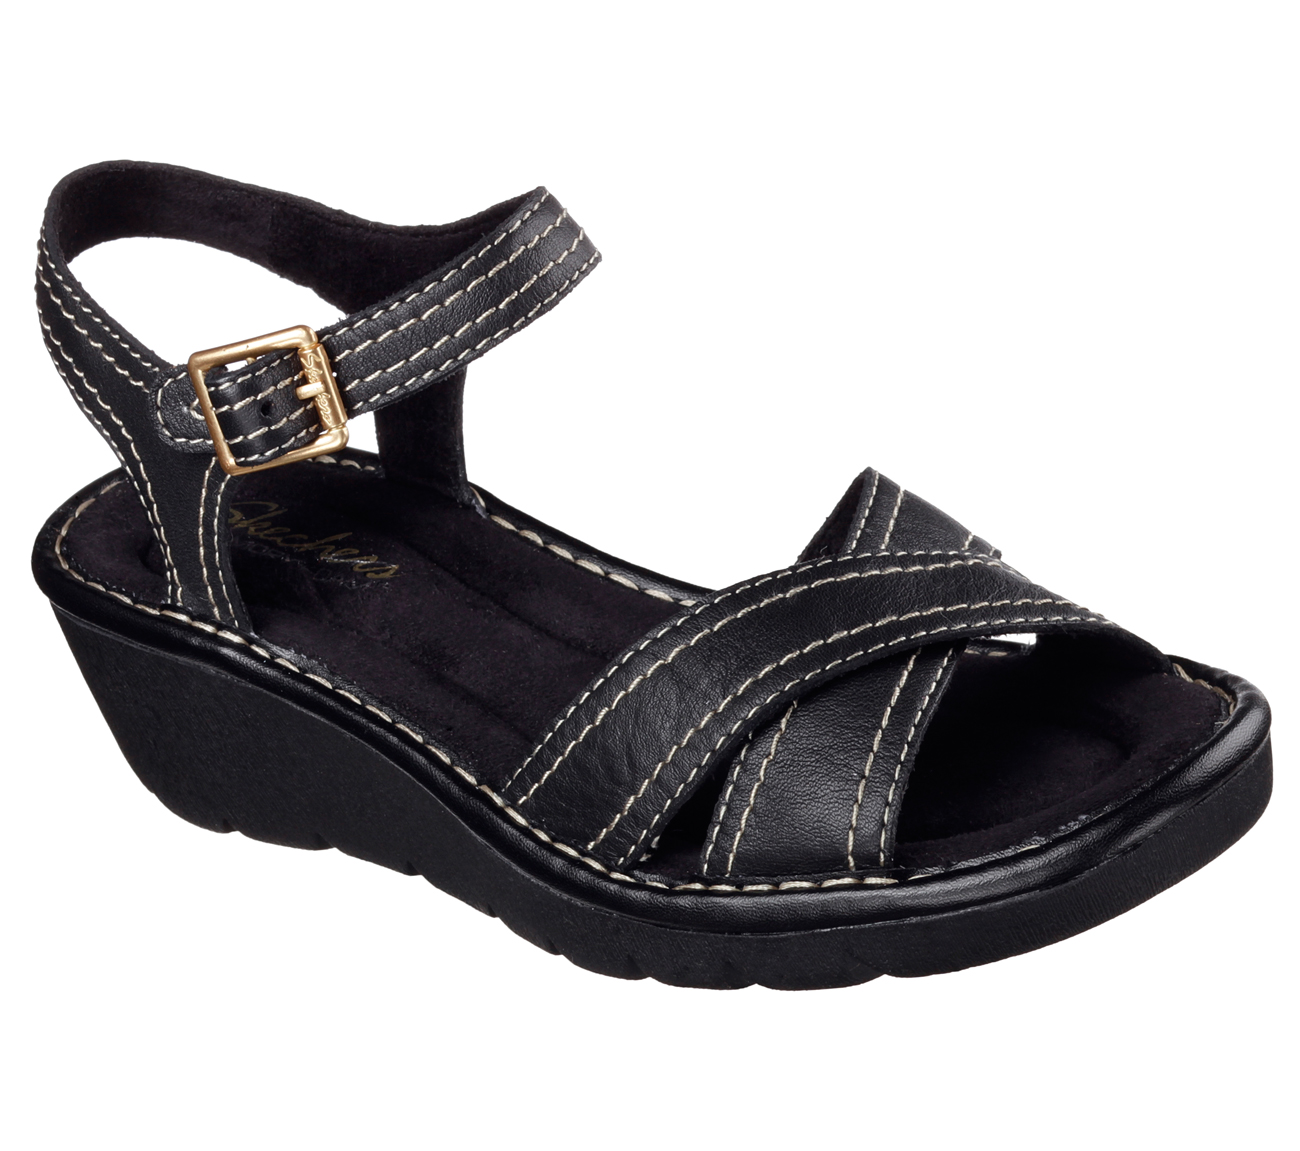 New Skechers Key Holes Wedge Sandal For Women  Gymshoeswomen